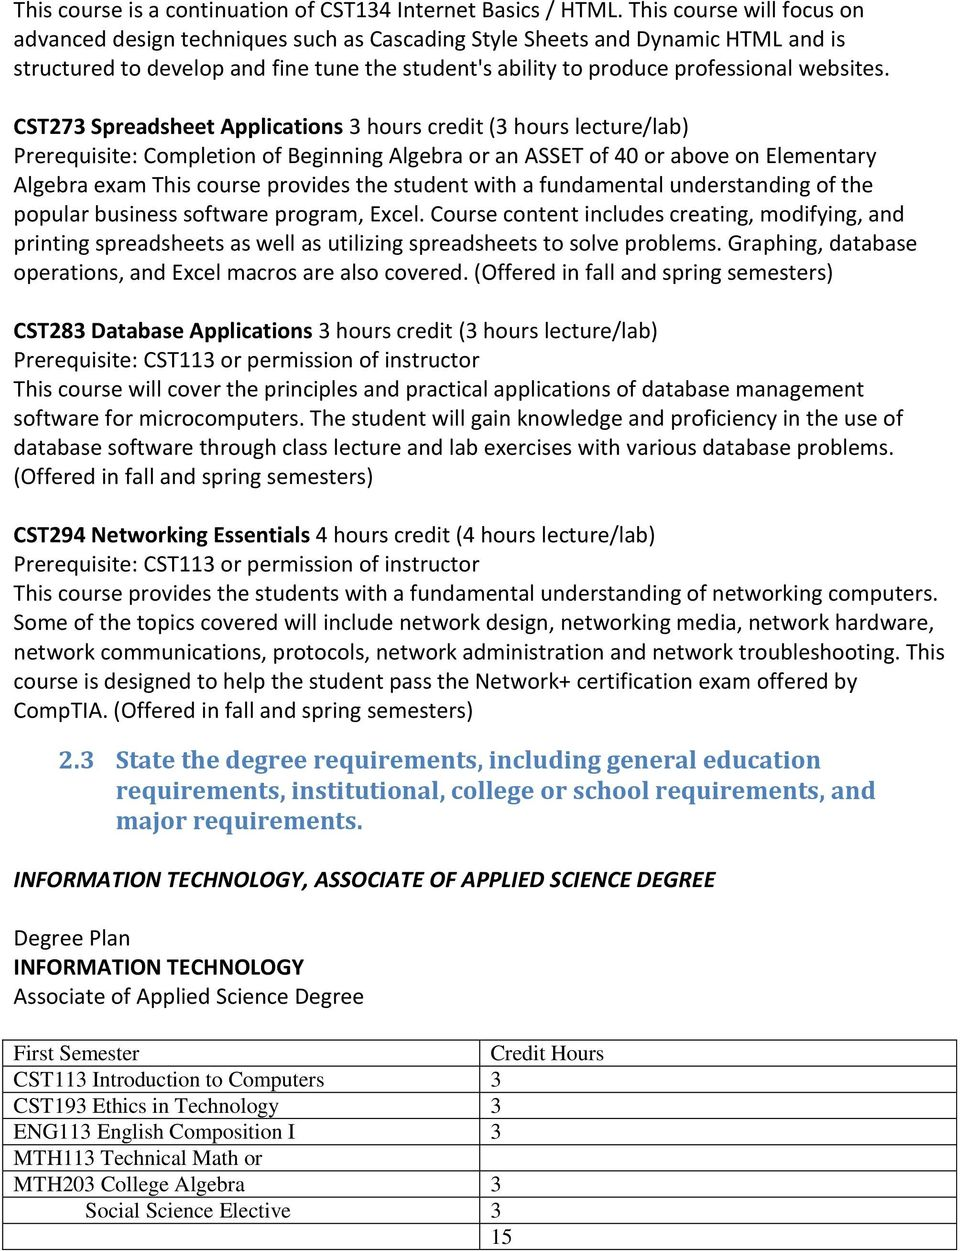 CST273 Spreadsheet Applications 3 hours credit (3 hours lecture/lab) Prerequisite: Completion of Beginning Algebra or an ASSET of 40 or above on Elementary Algebra exam This course provides the